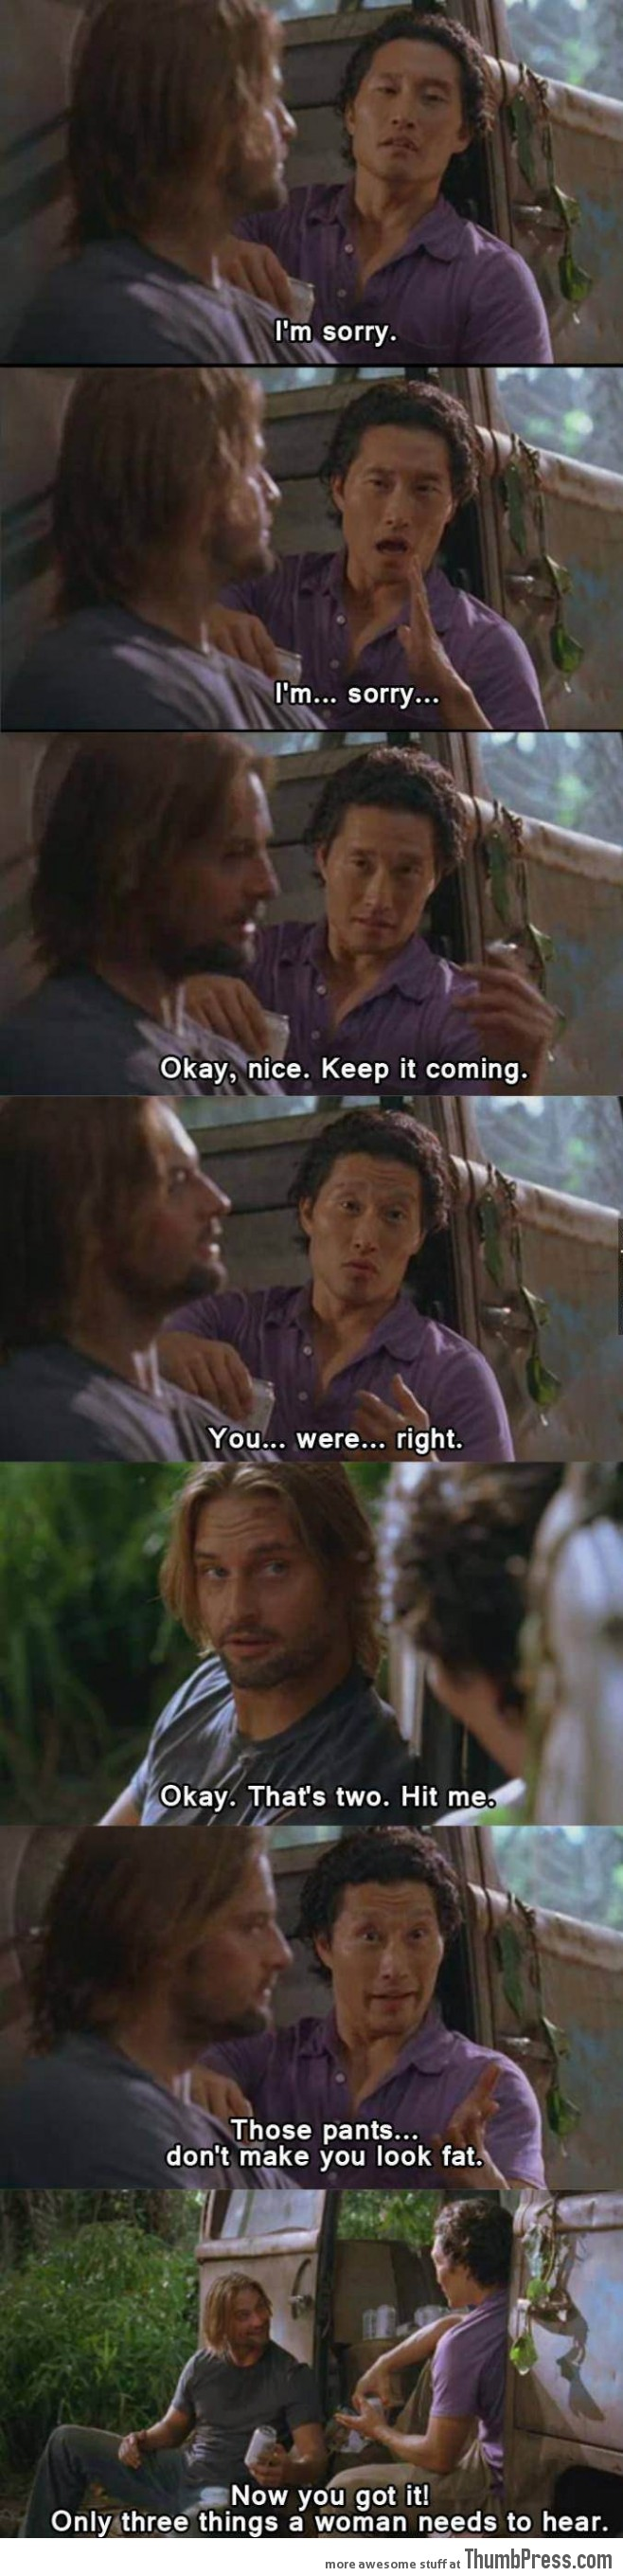 Just Sawyer telling the truth